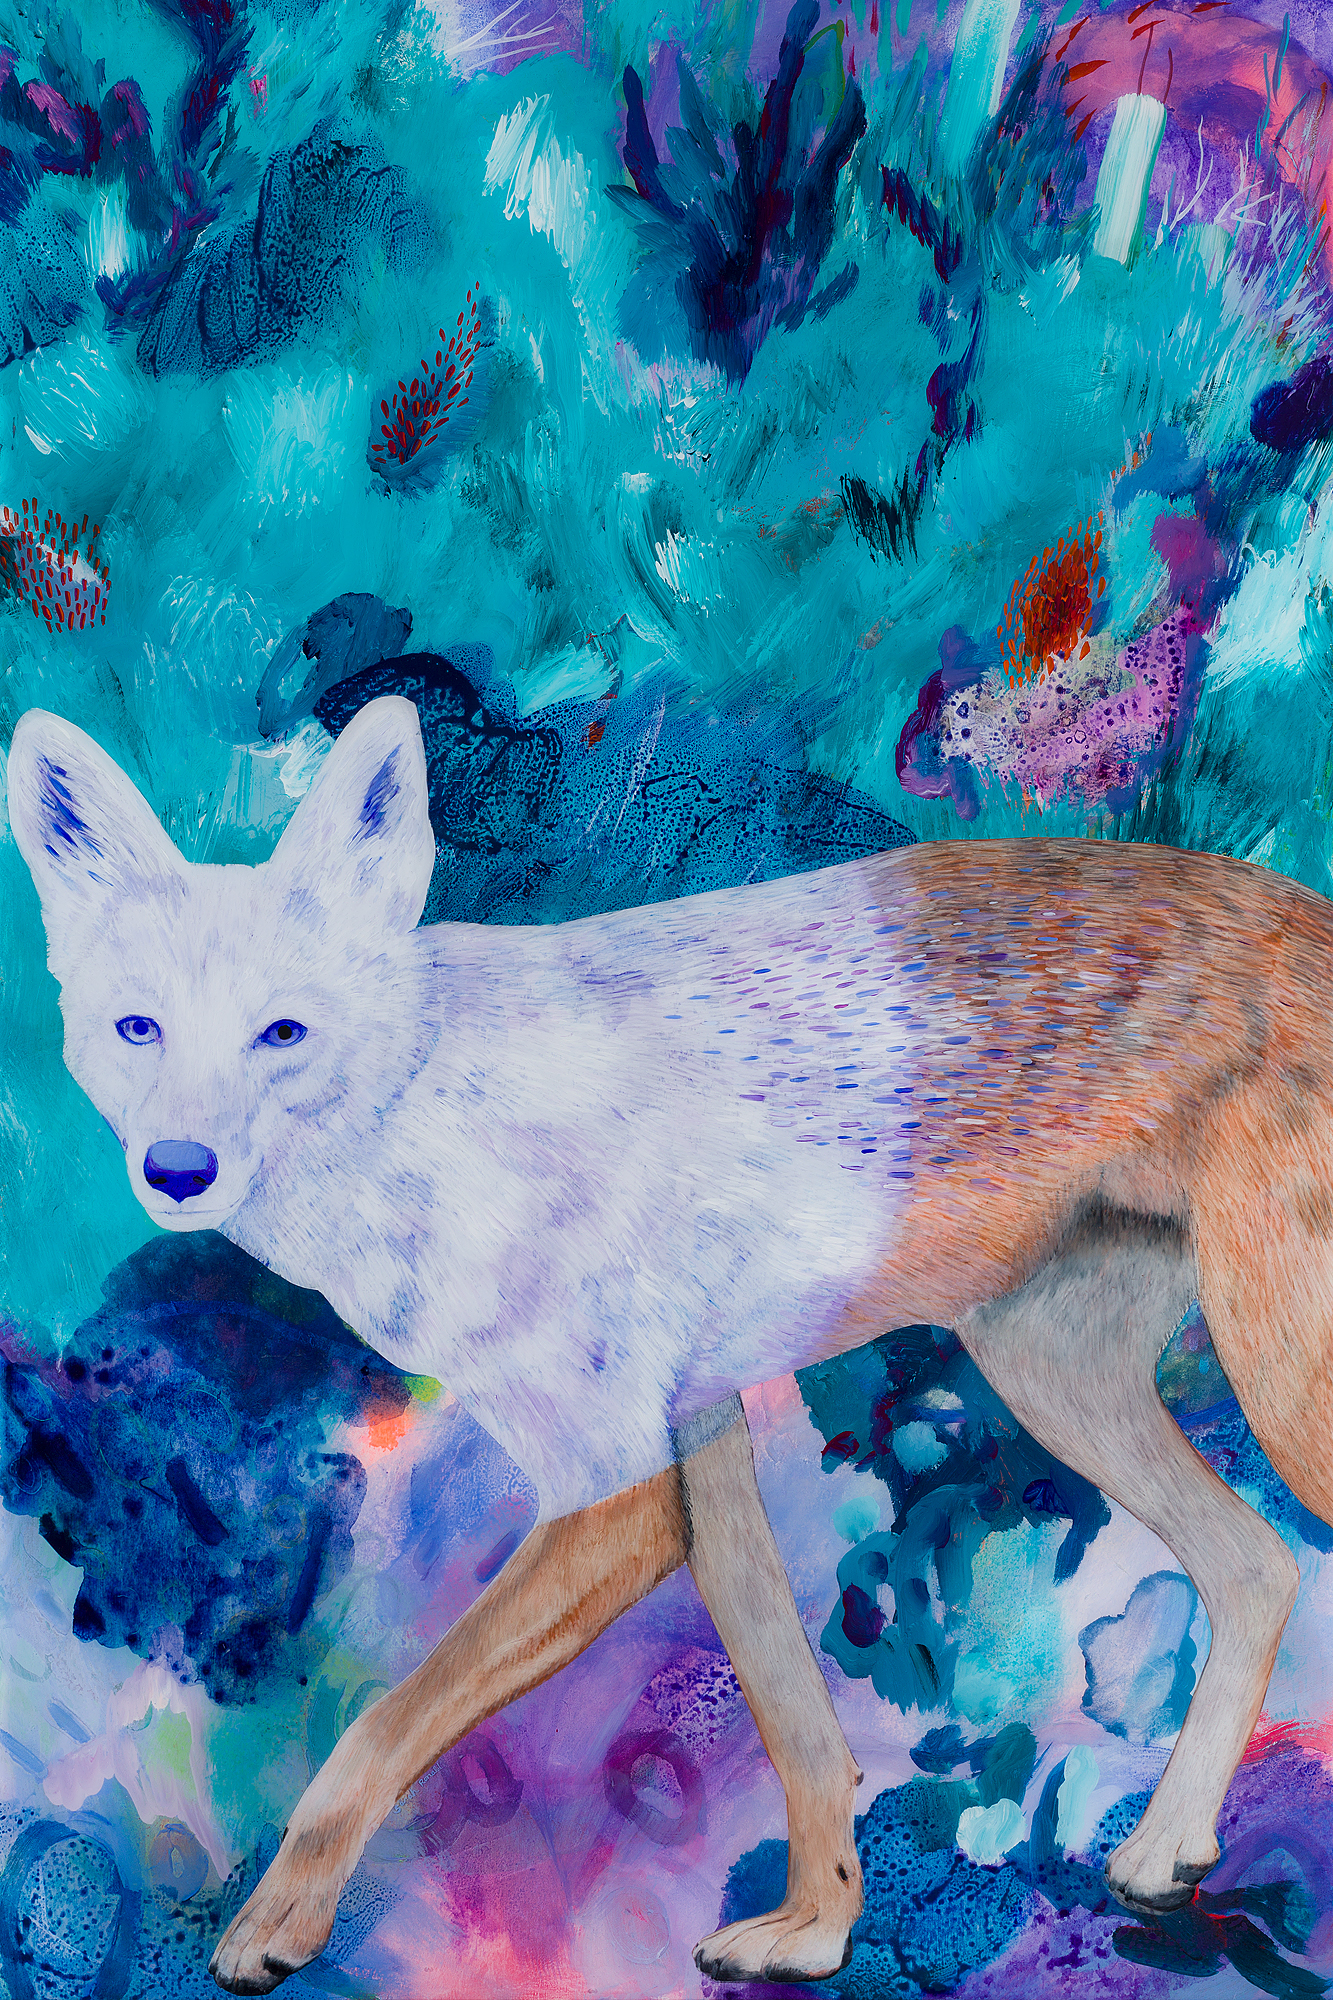 Running Coyote (II) , 2018. Coloured pencil, acrylic, and resin on wood panel, 36x24 inches. Sold. Prints available.